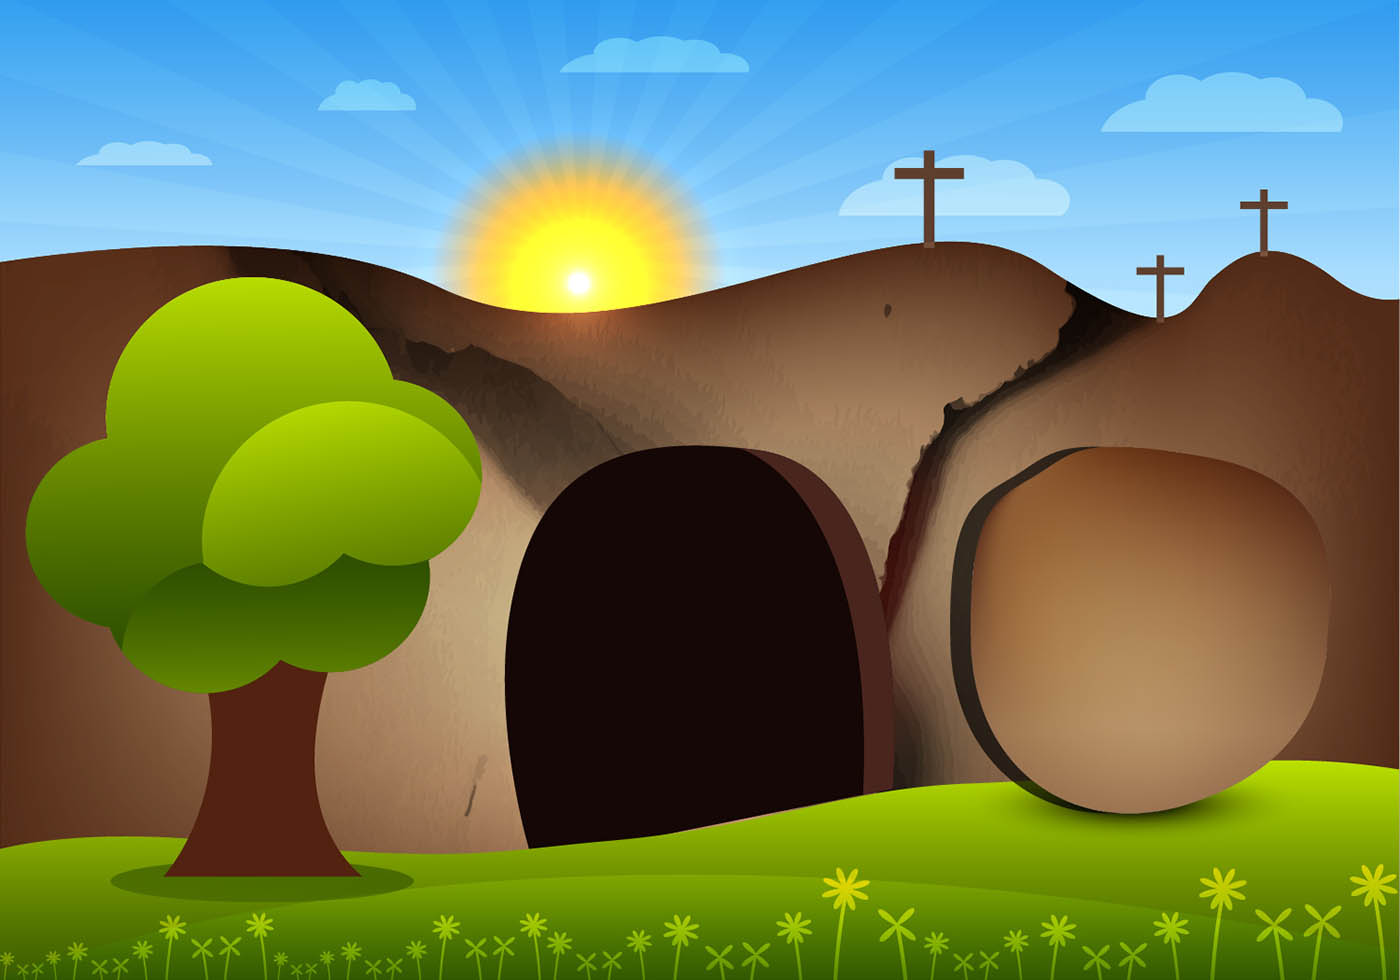 Clipart empty tomb vector royalty free library Jesus Empty Tomb Free Vector Art - (3 Free Downloads) vector royalty free library